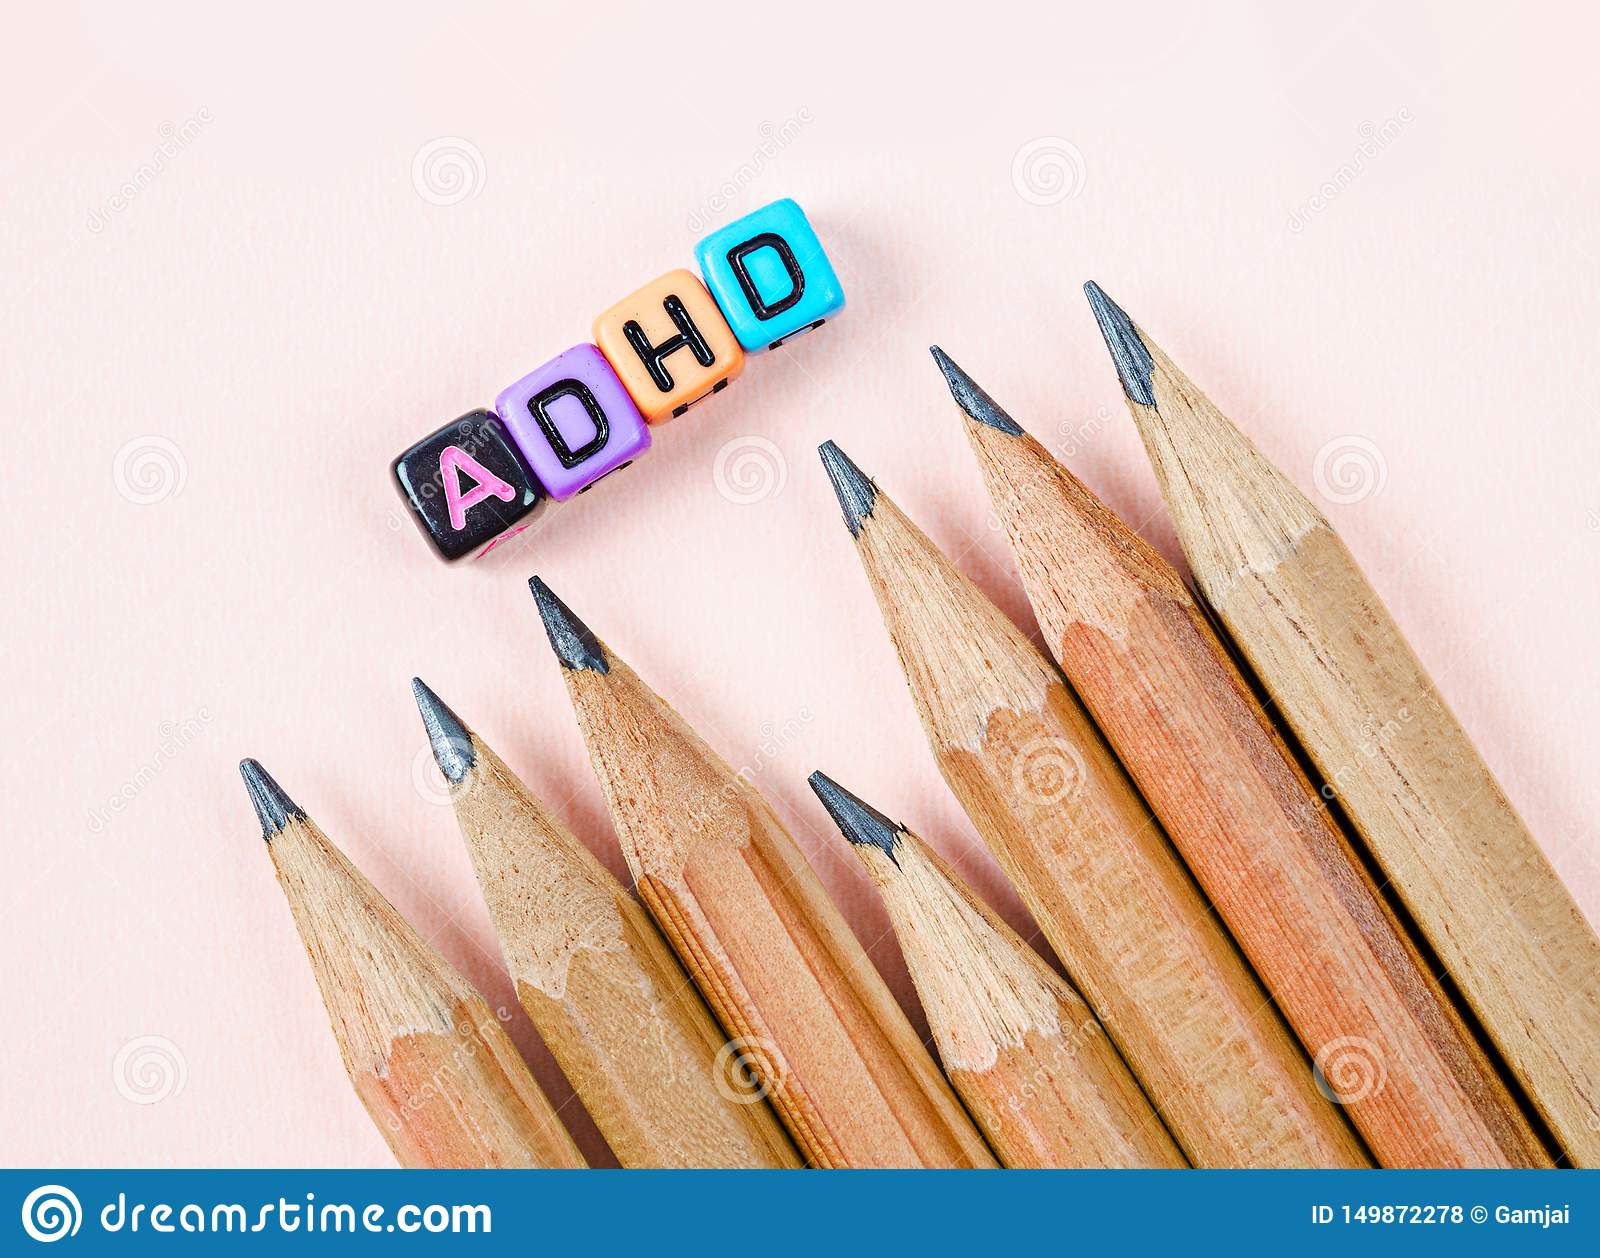 Attention Deficit Hyperactivity Disorder or ADHD concept